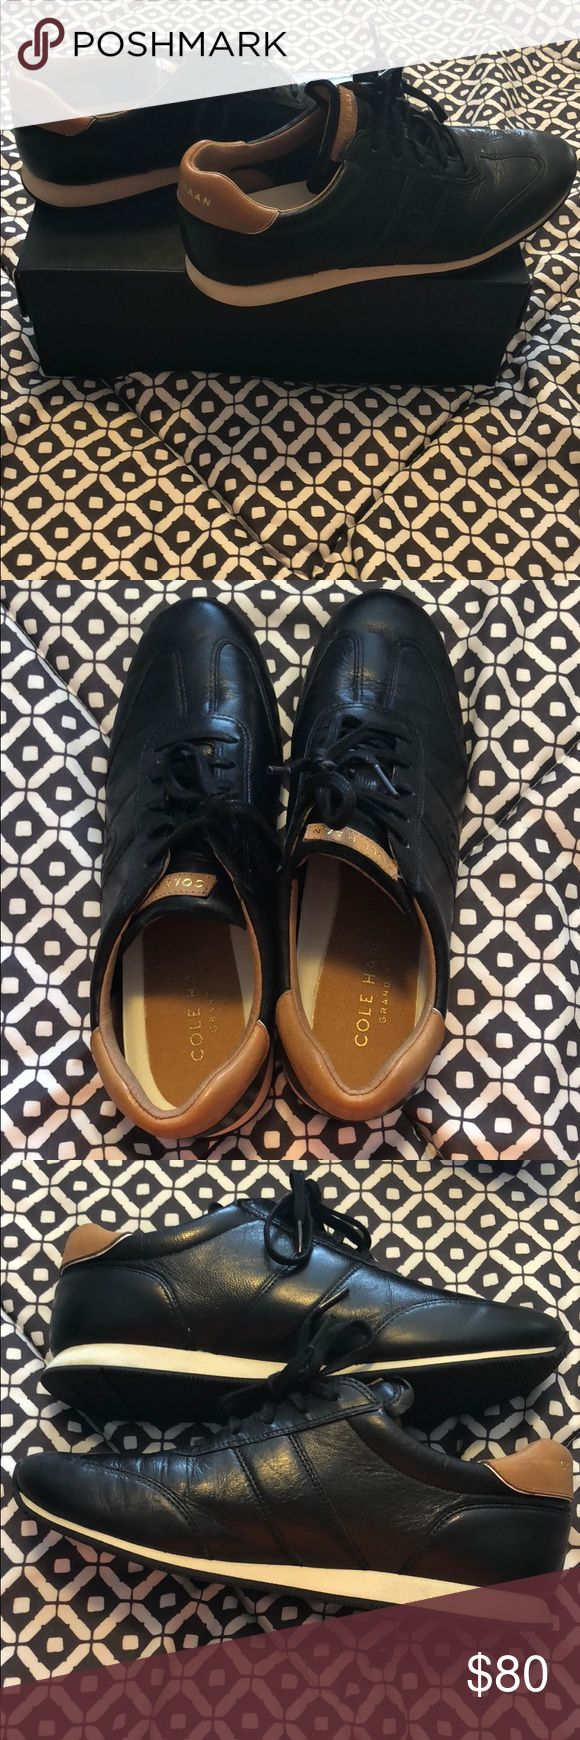 "Cole Haan Trafton Vintage Trainer Shoes Great condition & only worn a few times! Perfect for business or casual wear!  Leather/synthetic Rubber sole Platform measures approximately .25"" Fully lined Vulcanized rubber outsoles Cole Haan Shoes Sneakers"